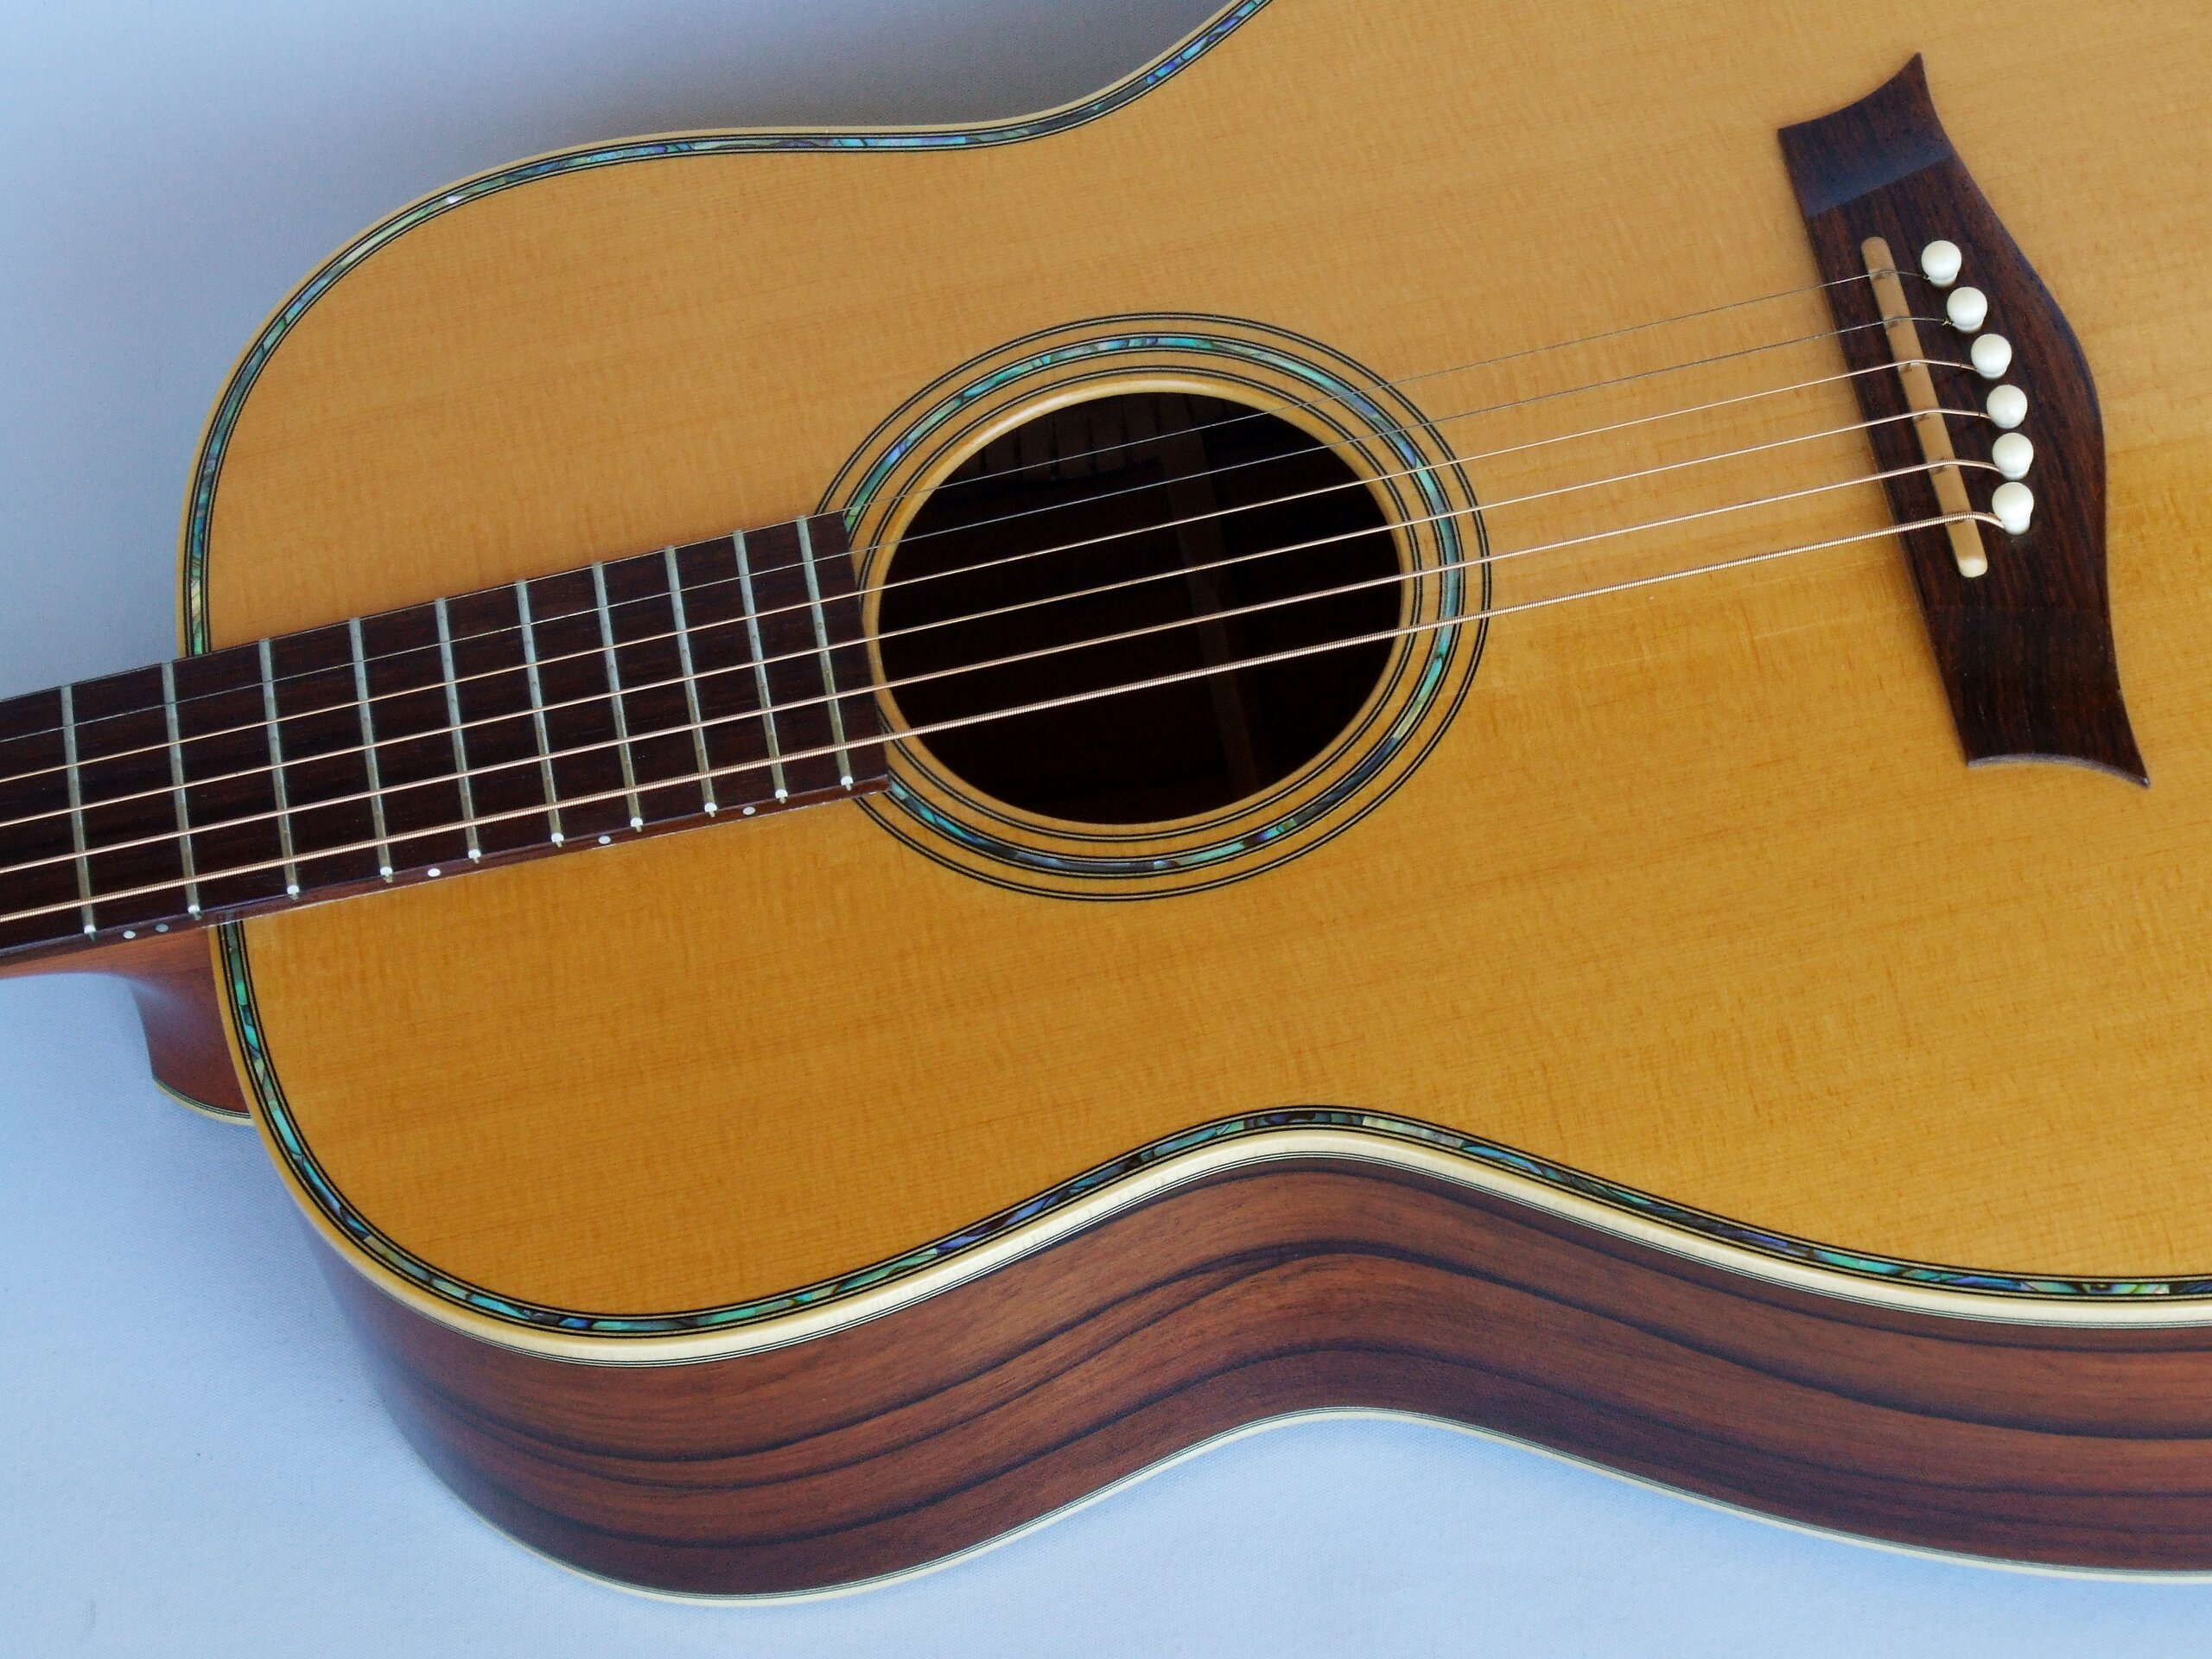 Aged spruce top on a 12 fret 00 guitar with paua decoration